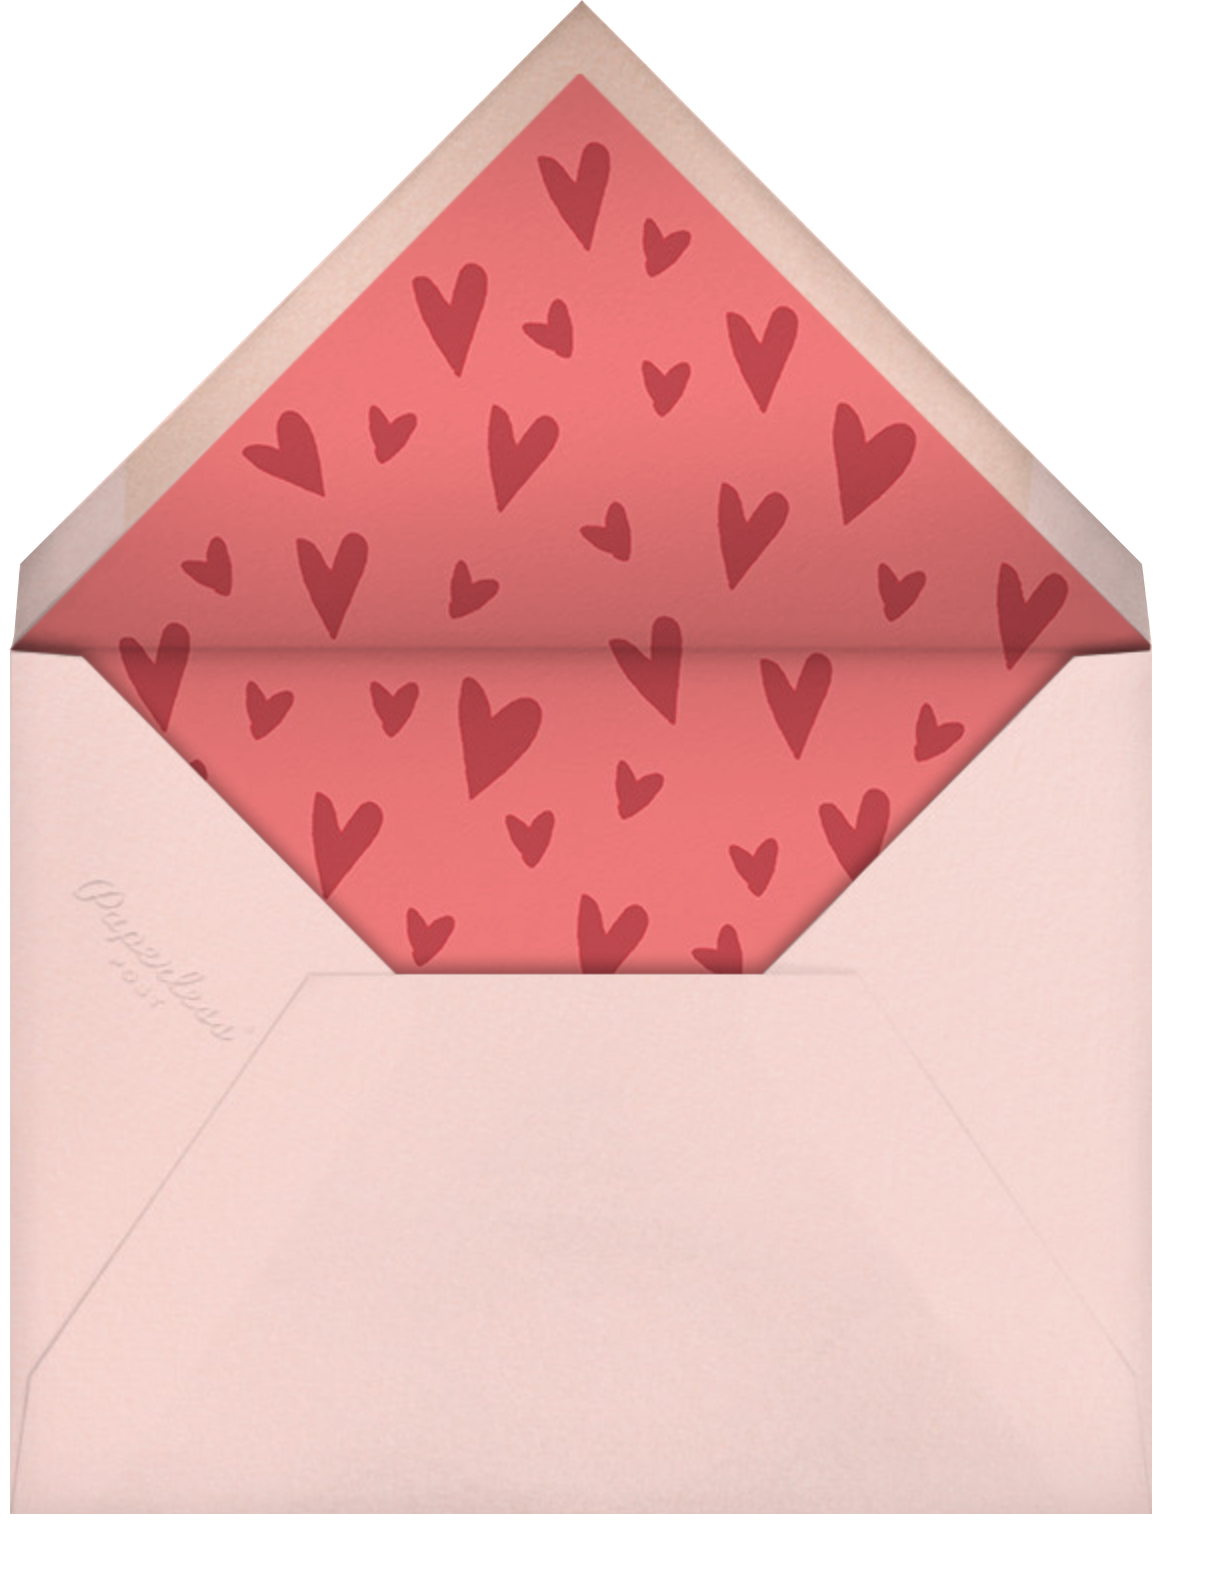 My Favorite Thing - Paperless Post - Valentine's Day - envelope back